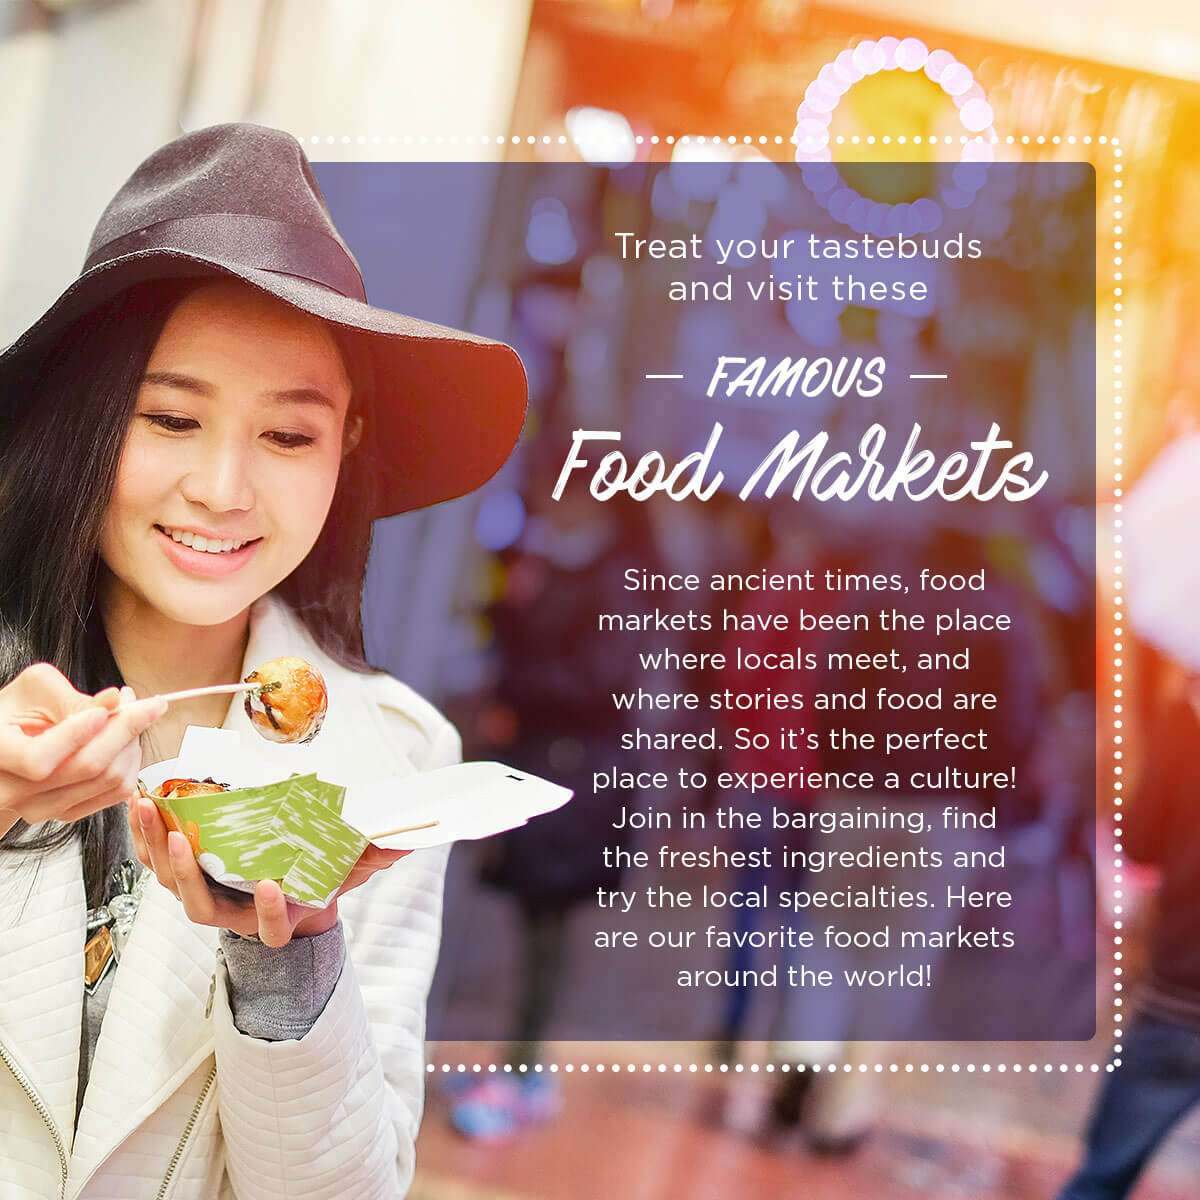 Treat your tastebuds and visit these famous Food Markets!